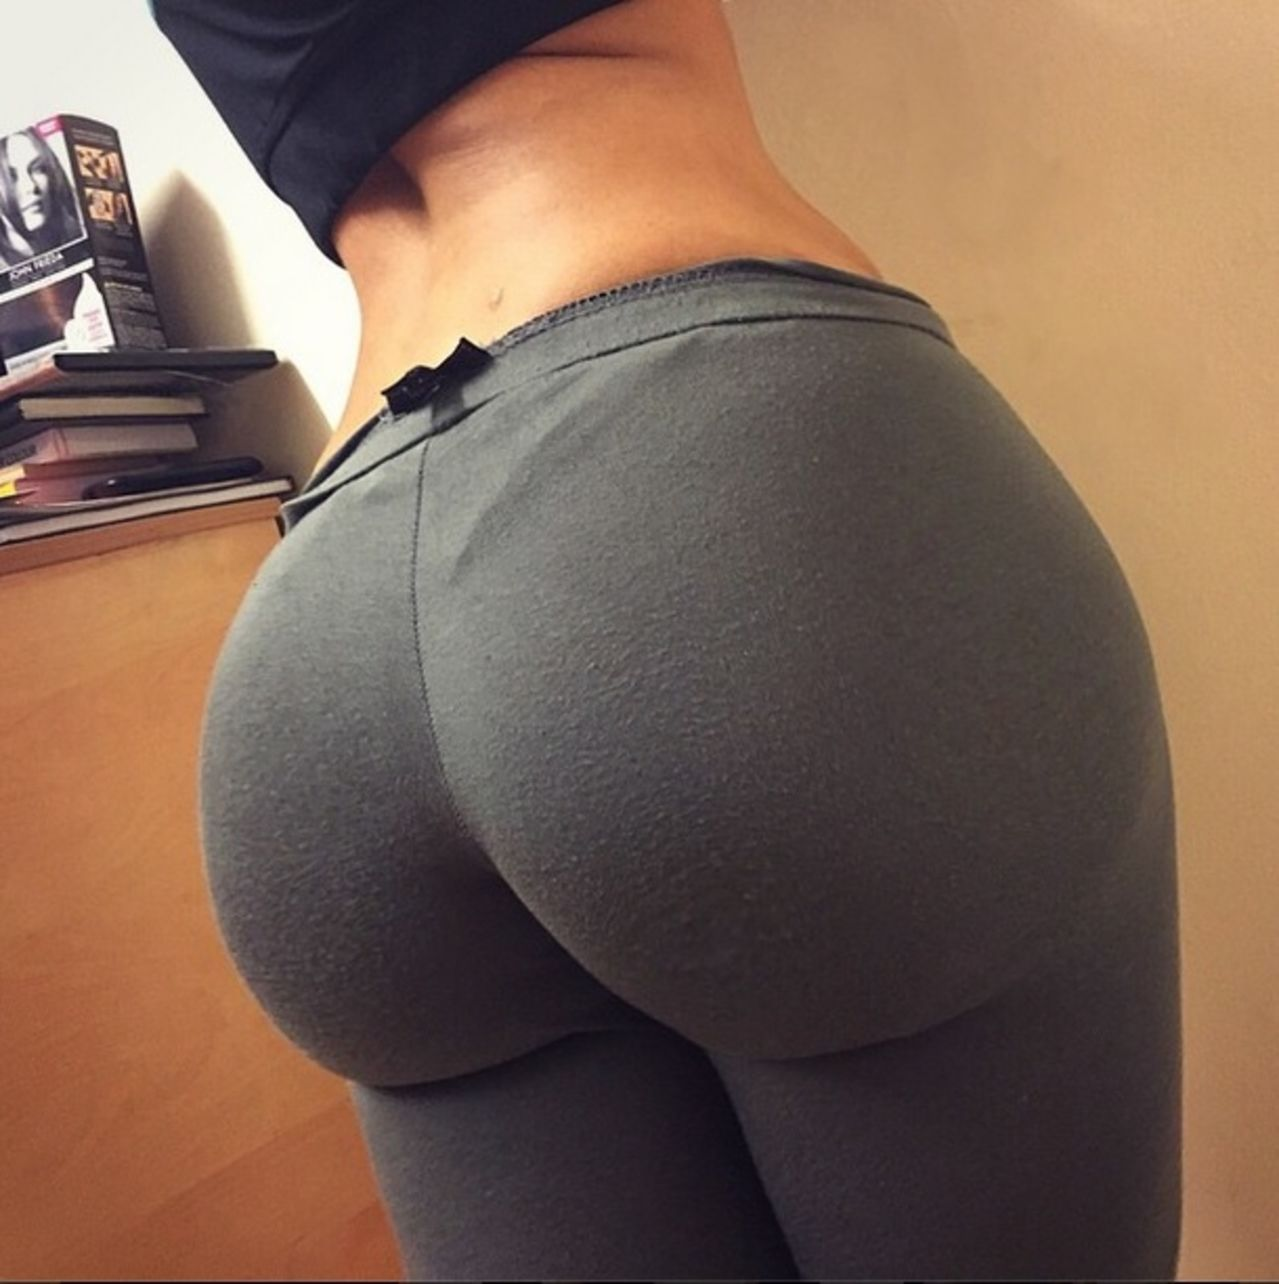 showing porn images for jelena jensen sucking porn #leggings #yogapants #spandex #spandexass #bigbooty #bigass #booty #ass #pawg #whooty #thick #tight #perfectass #sexyass #hugeass #perfect